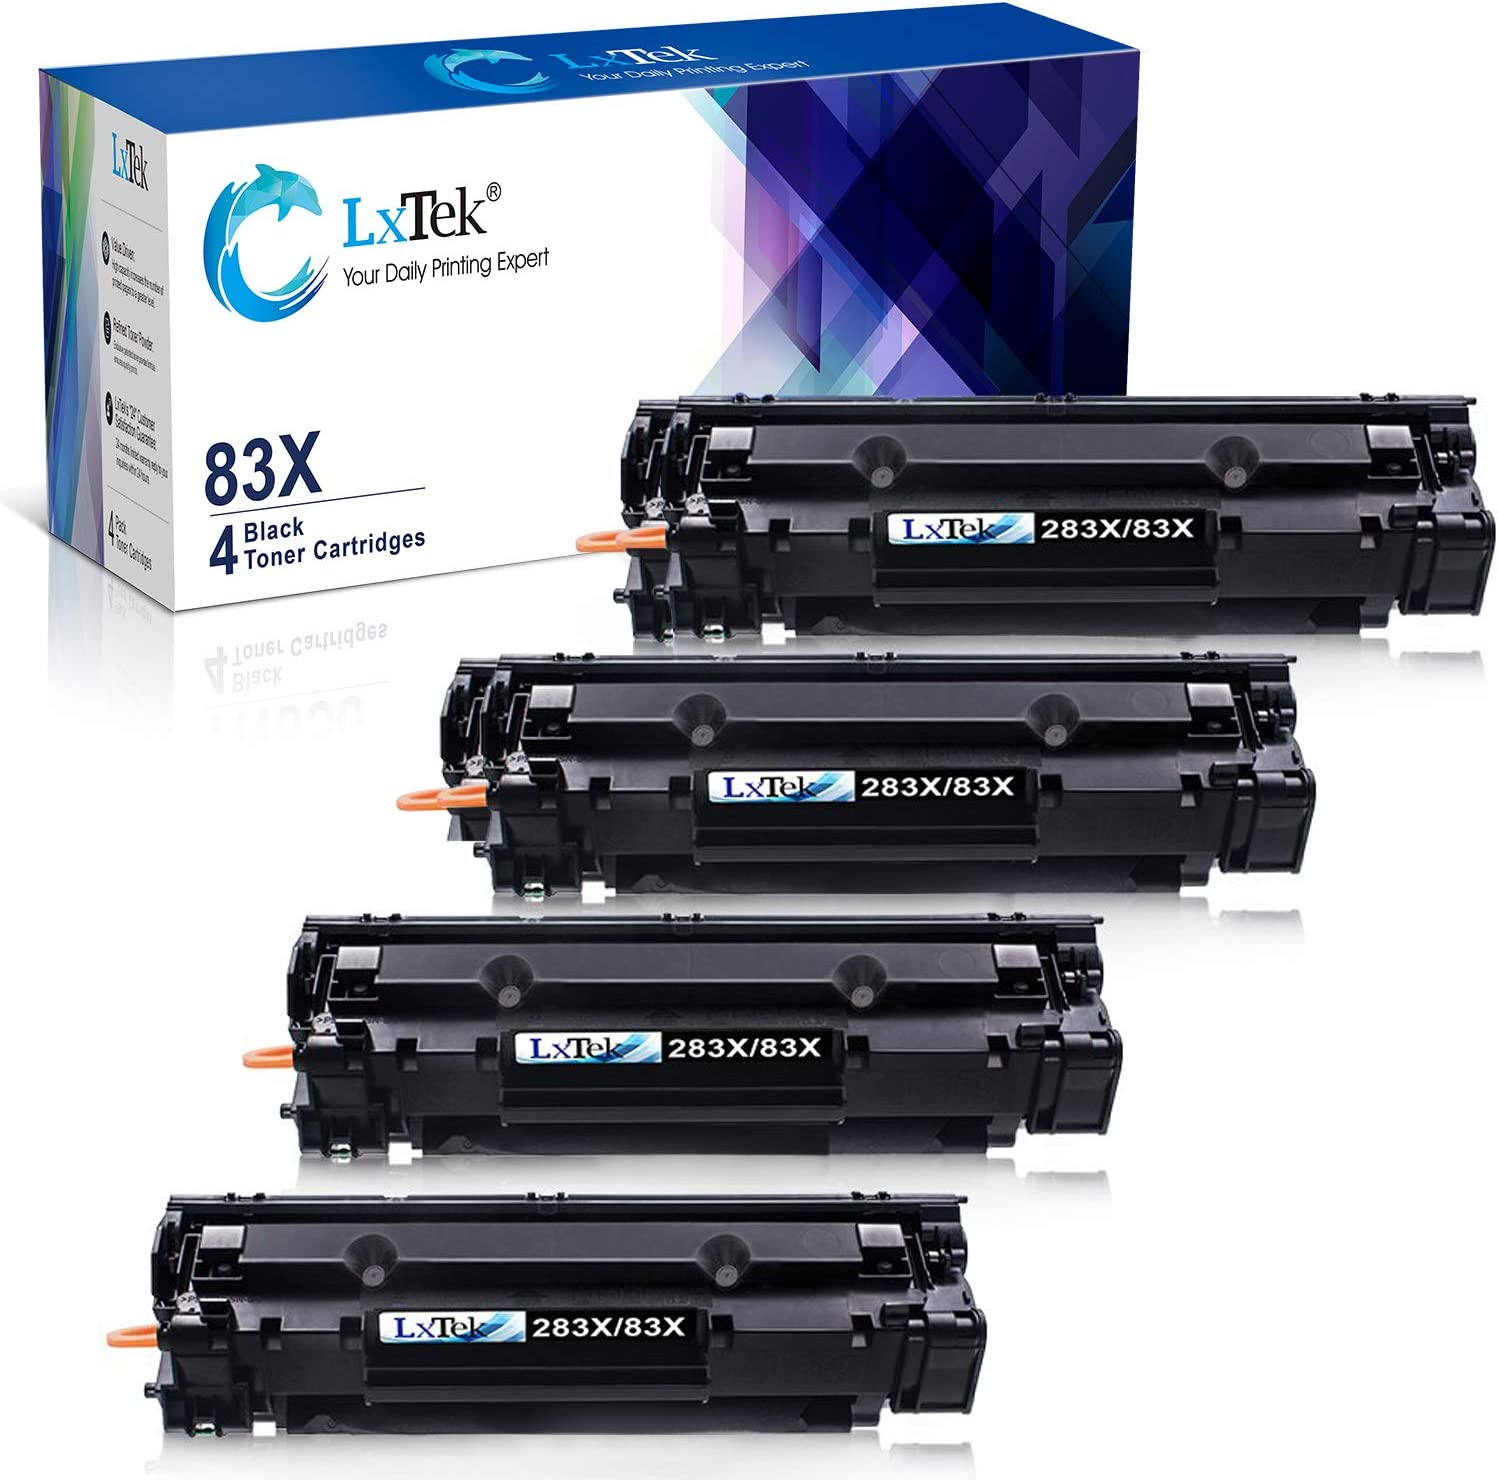 LxTek Compatible Toner Cartridge Replacement for HP 83X CF283X 83A CF283A to use with Laserjet Pro M201dw M201n M201 M125 M125nw M127fn M127fw M225dn M225dw Laser Printers (4-Black, High-Yield)